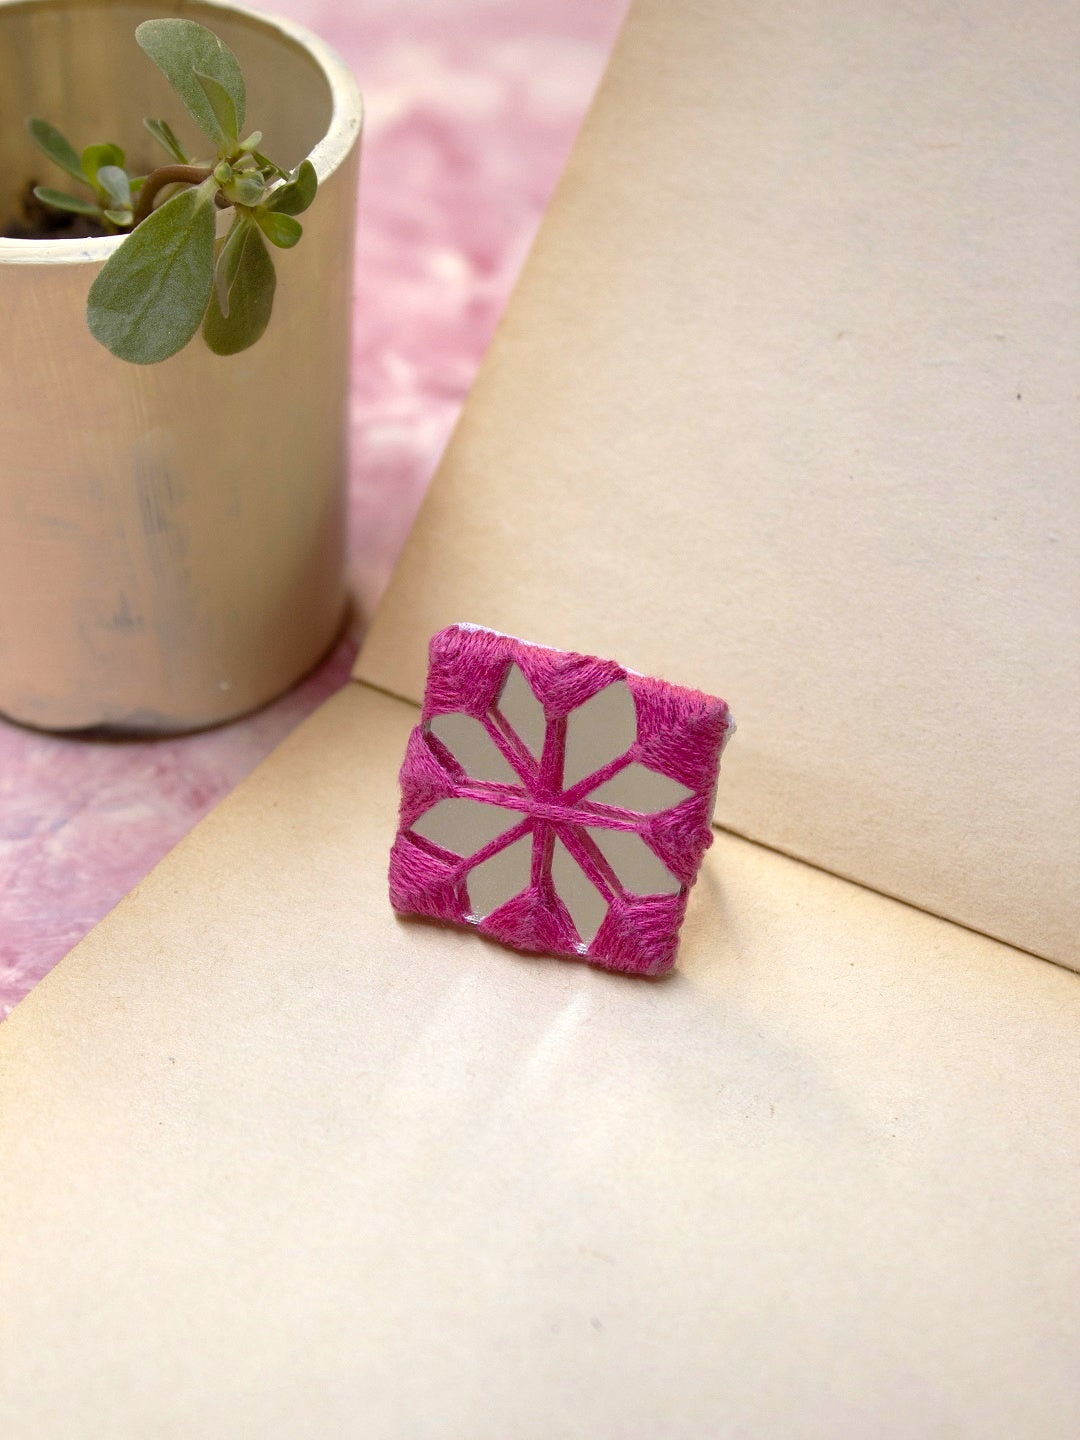 Handmade Fabric Square Shaped Mirror Design Finger Ring By Hands To Heart-HANDS TO HEART-Finger Ring